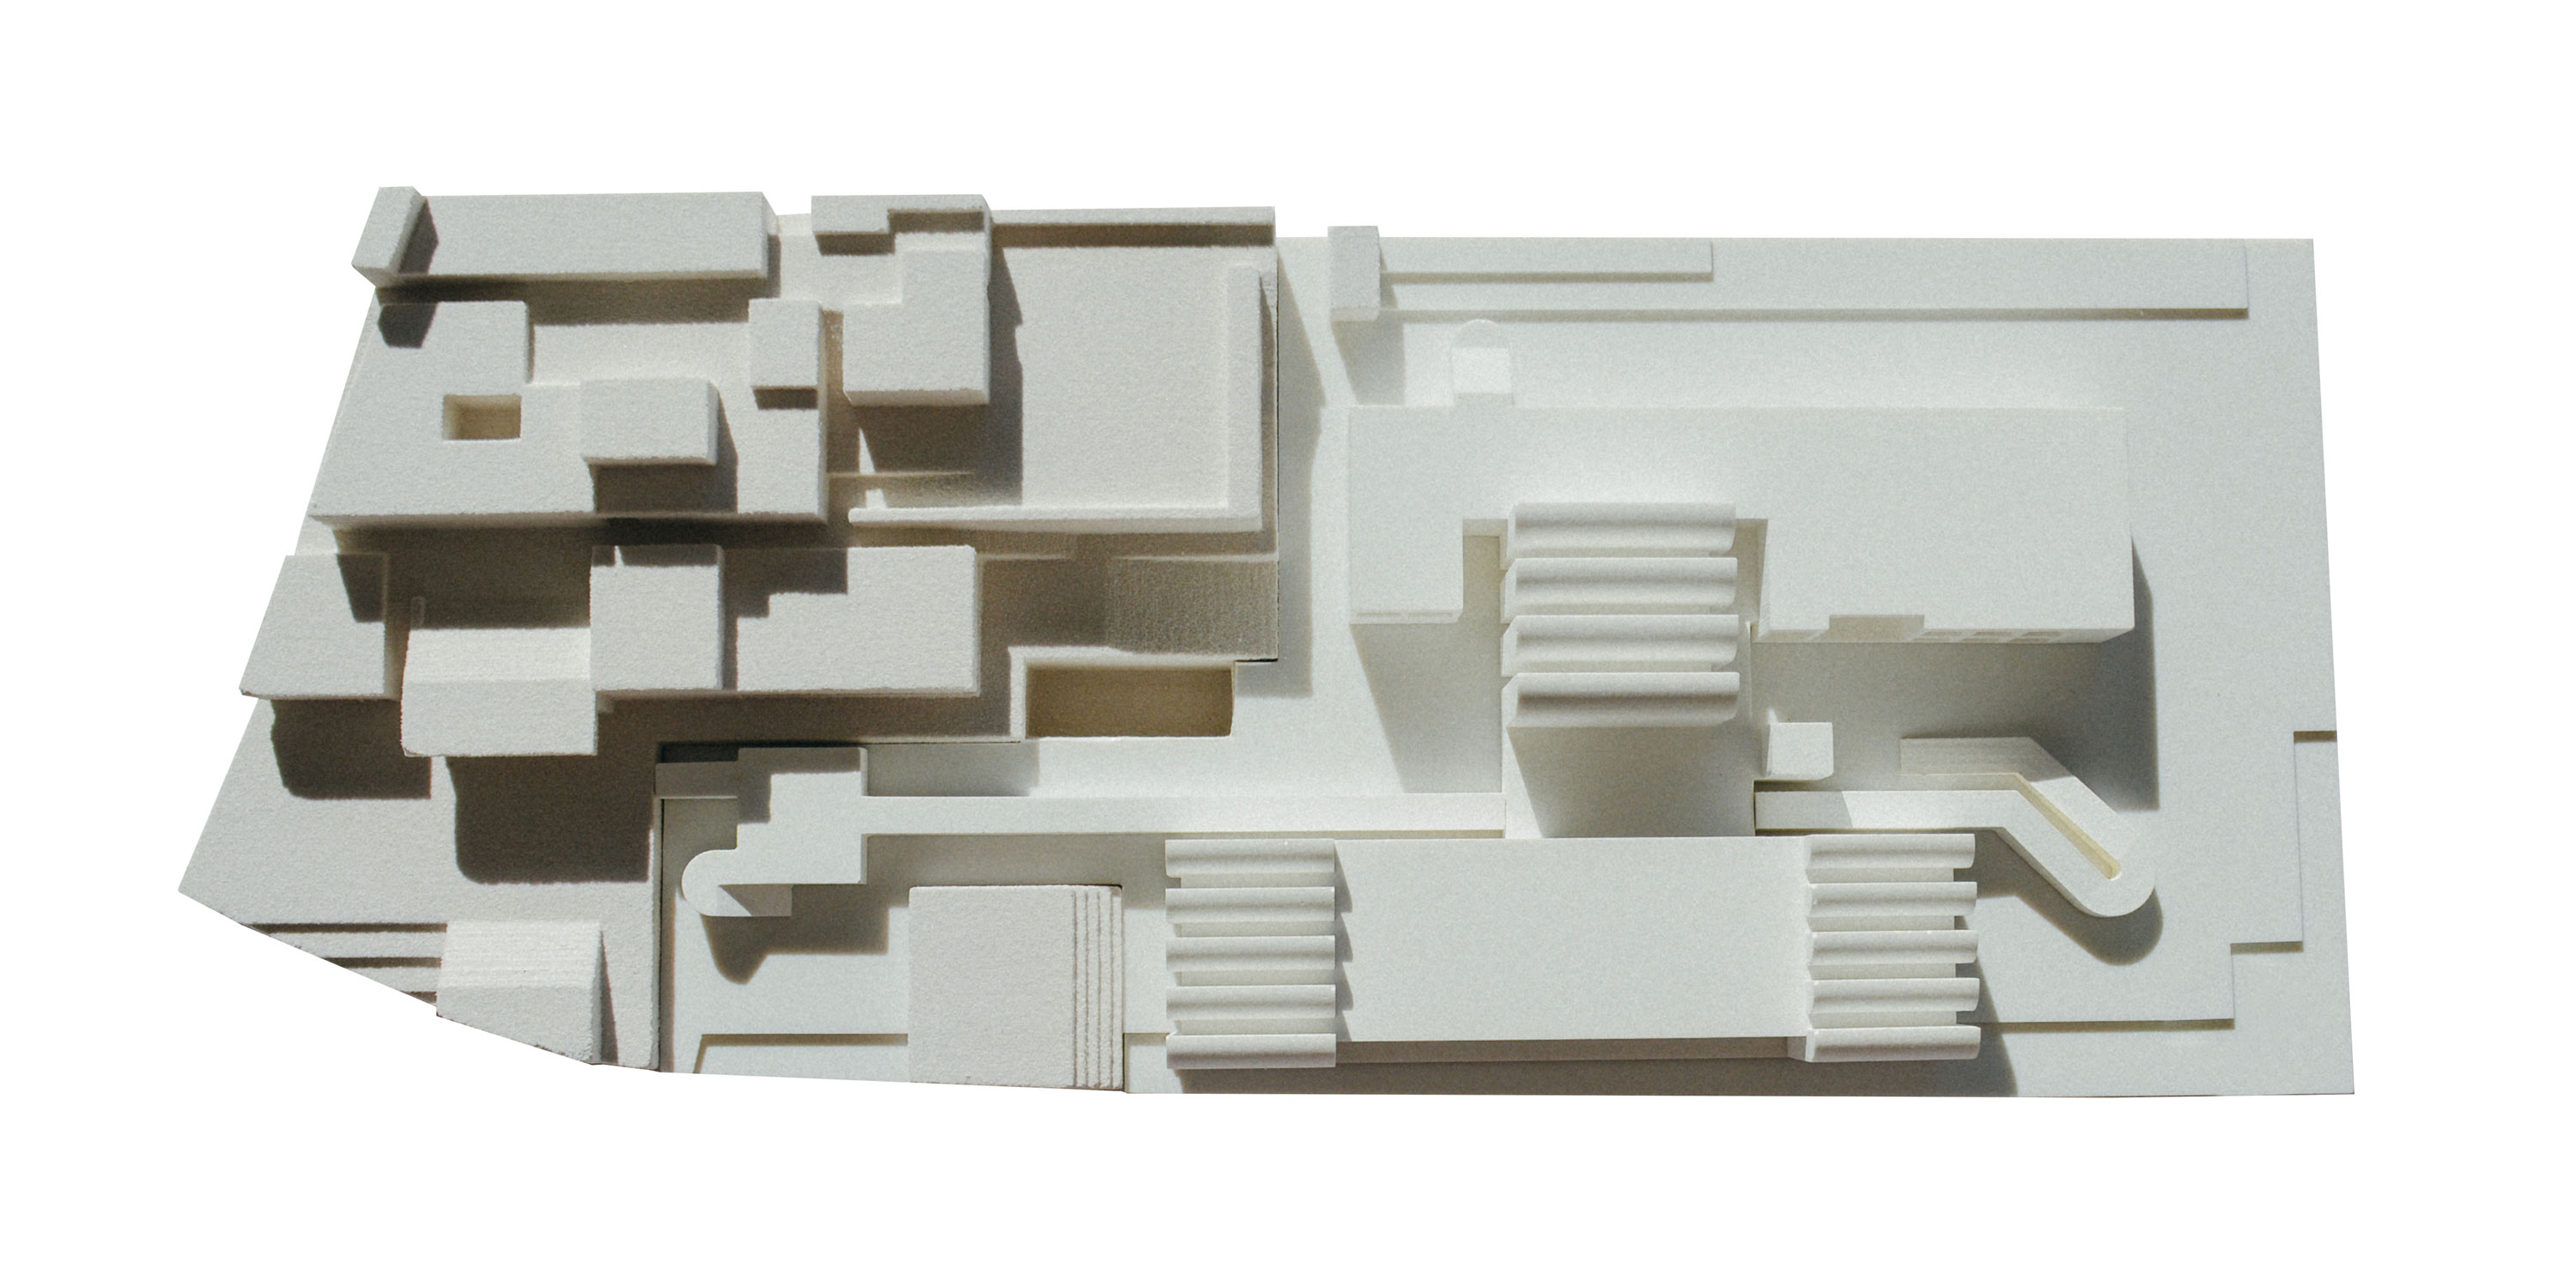 ppag_bauhausarchiv_model2